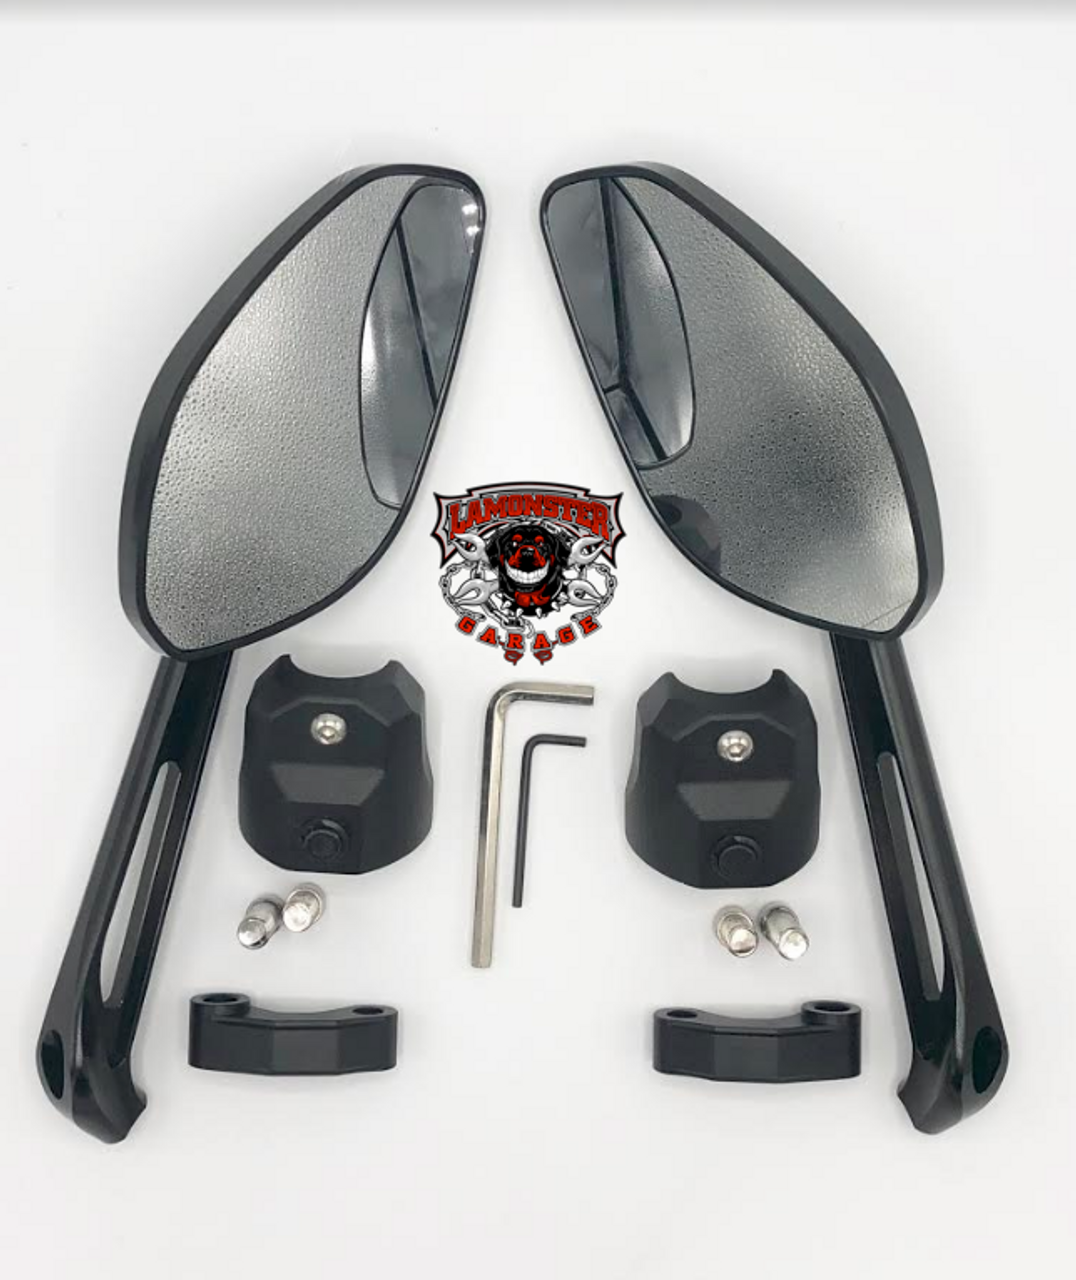 Big Eye Mirrors & Top Cap Combo (LG-1027-5525) by Lamonster For the Can Am Spyder F3 Models.